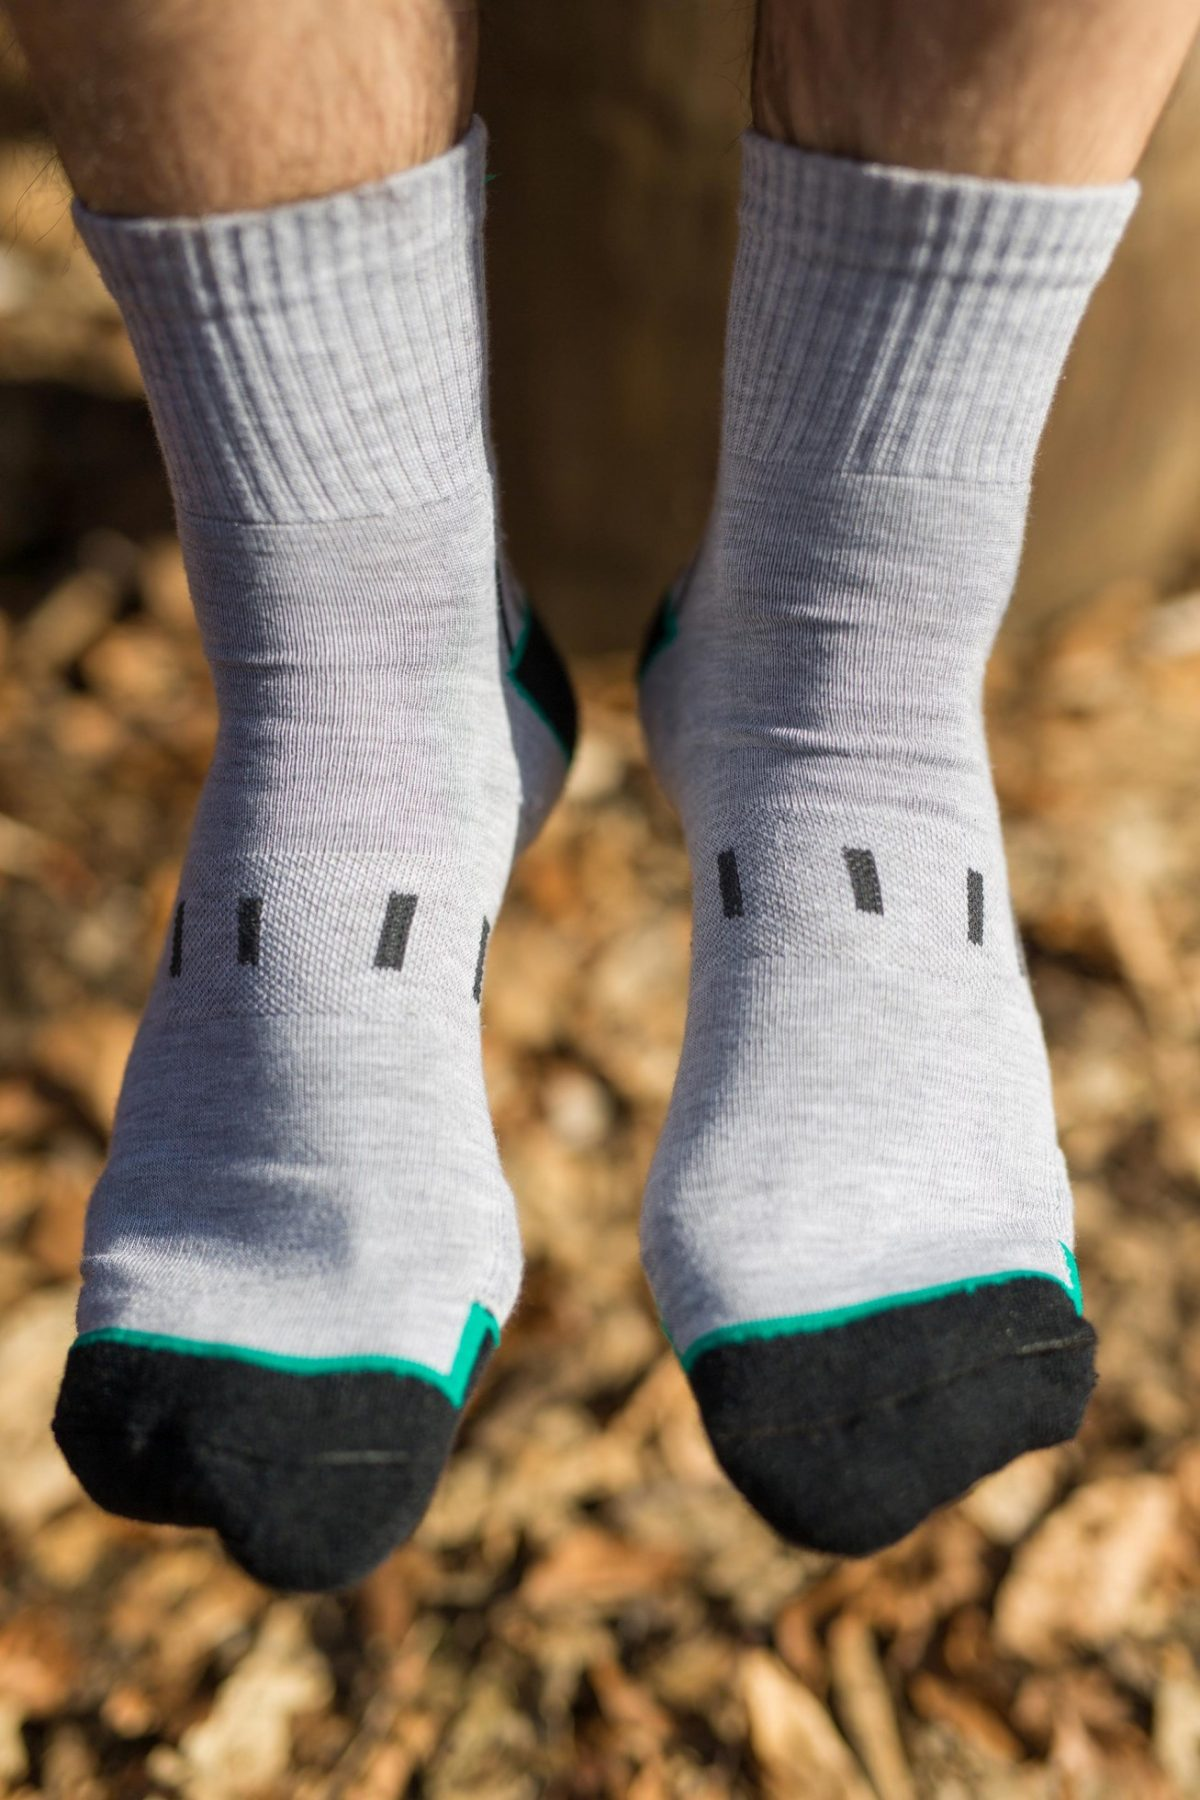 Dogmasocks man Mountain goat hiking socks in crew height, grey color